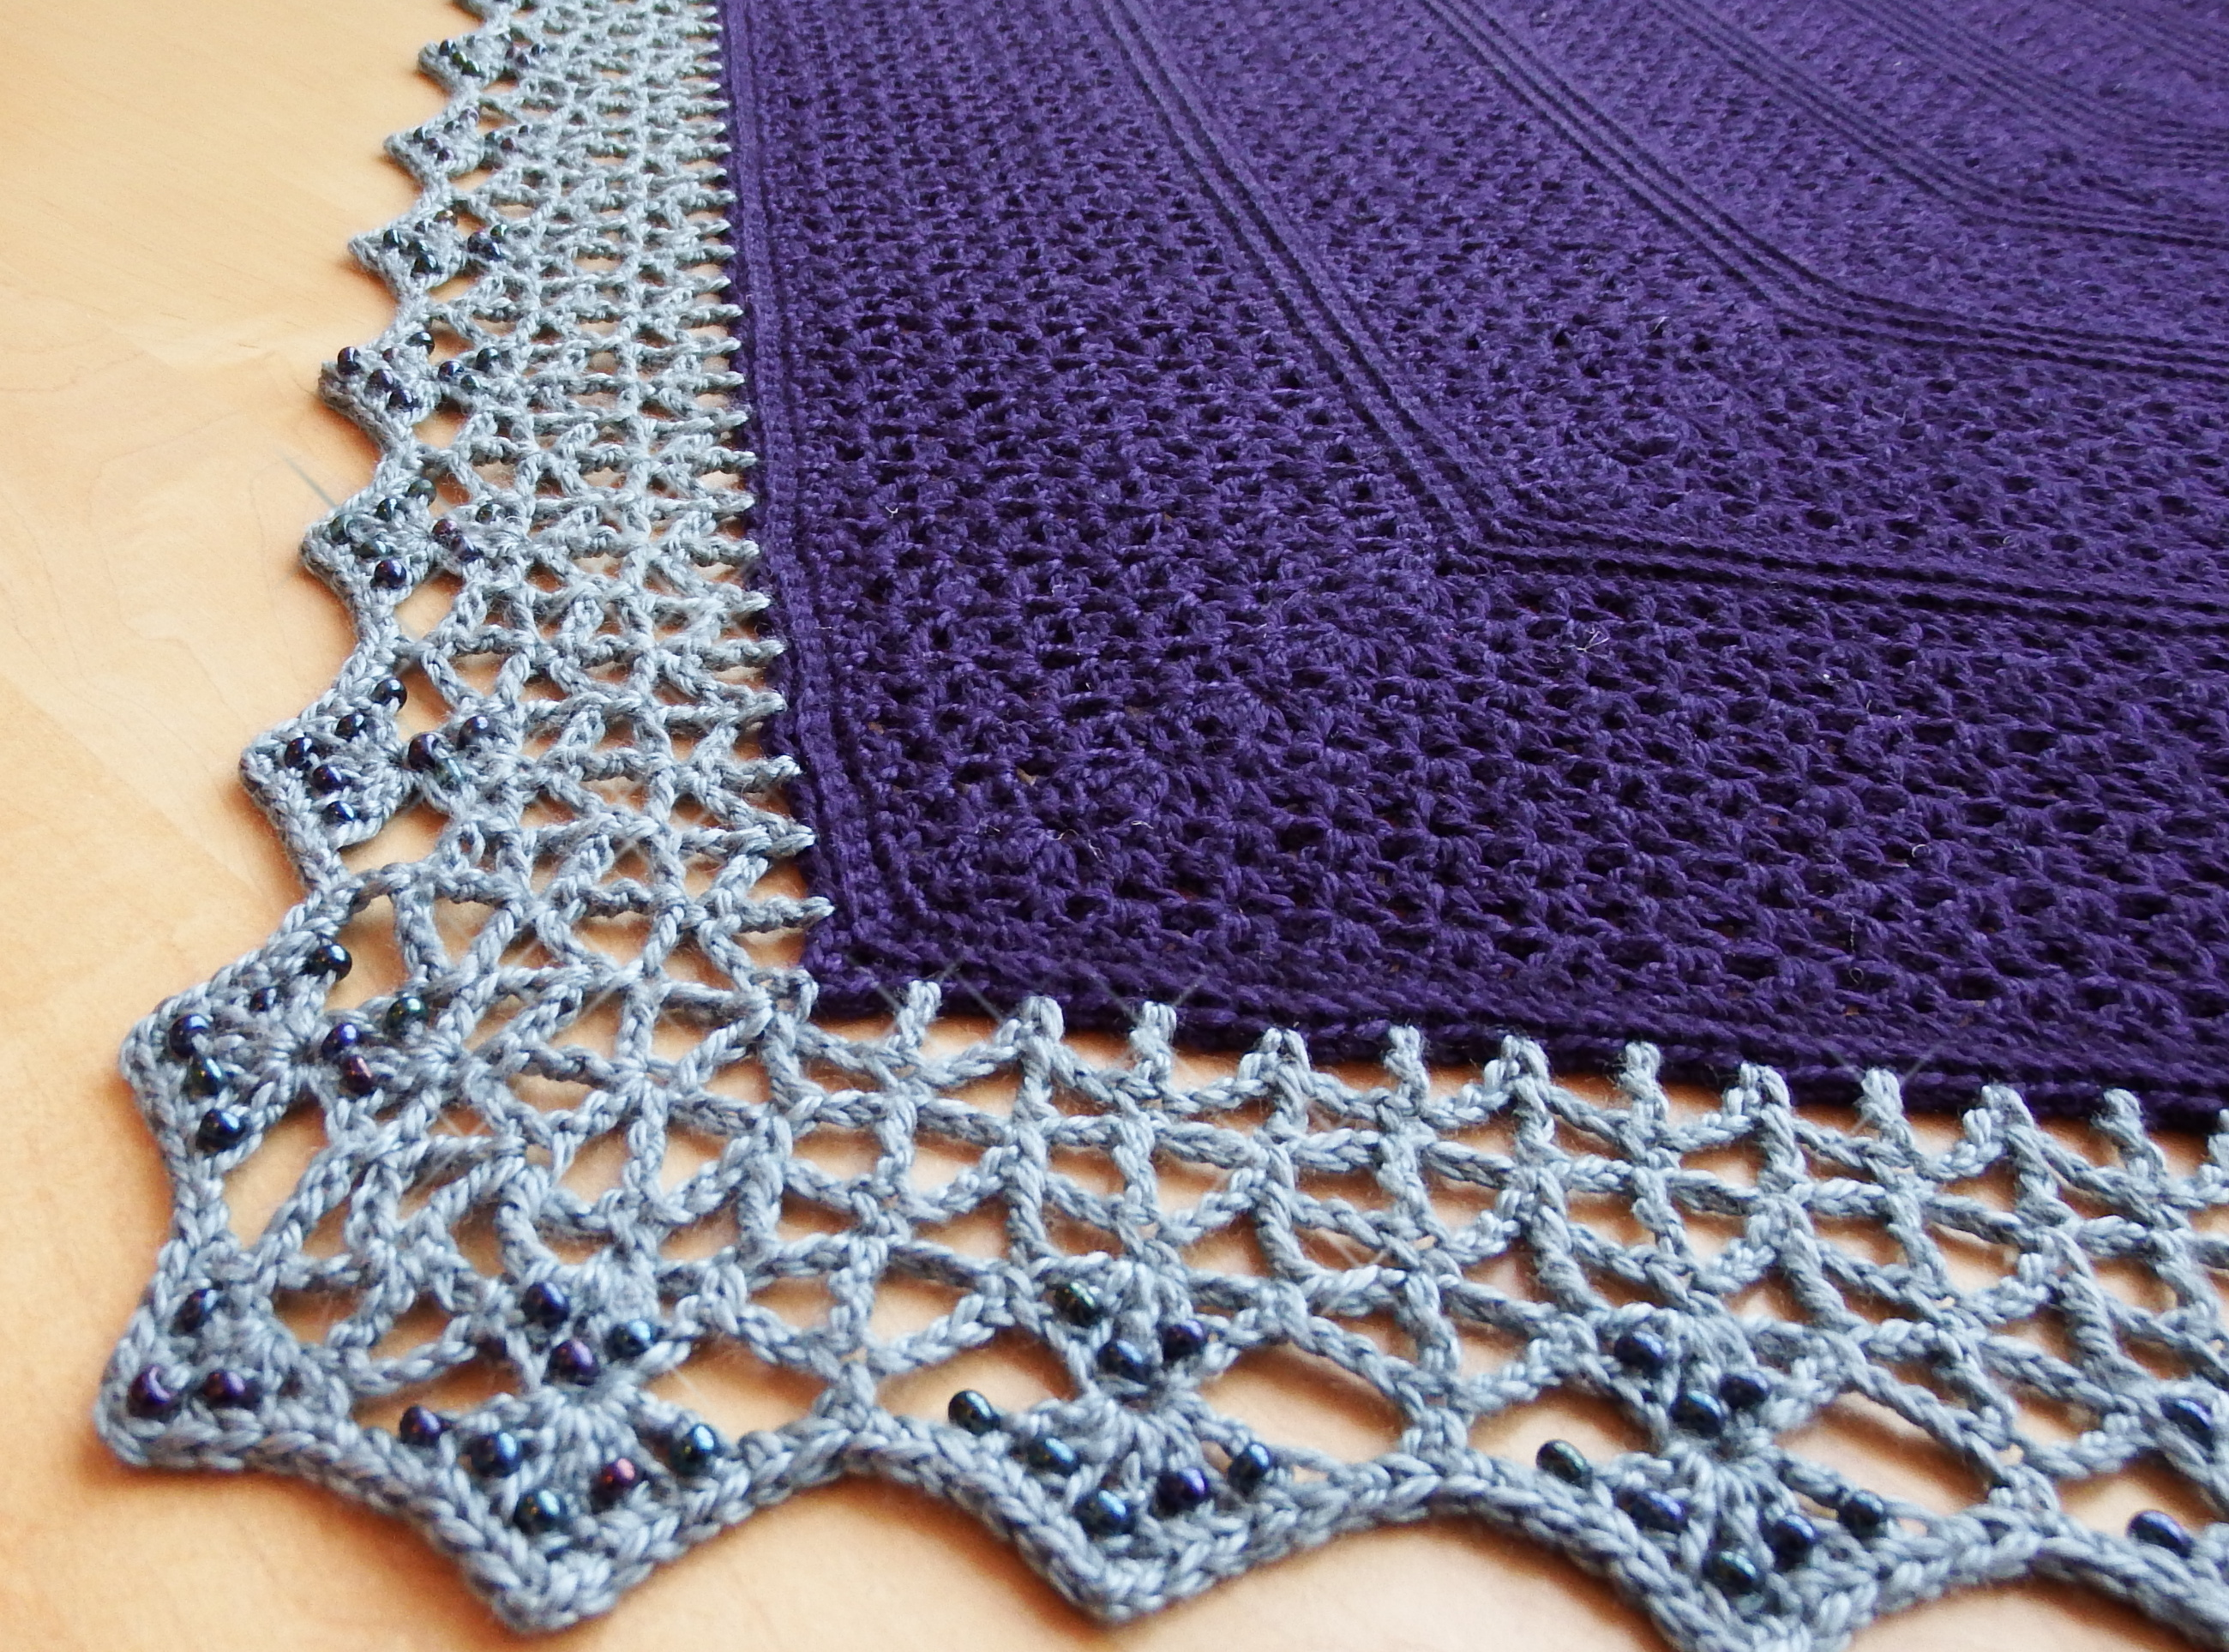 Crochet Lace Pattern For Edging : Atlantic Lace Shawl Make My Day Creative